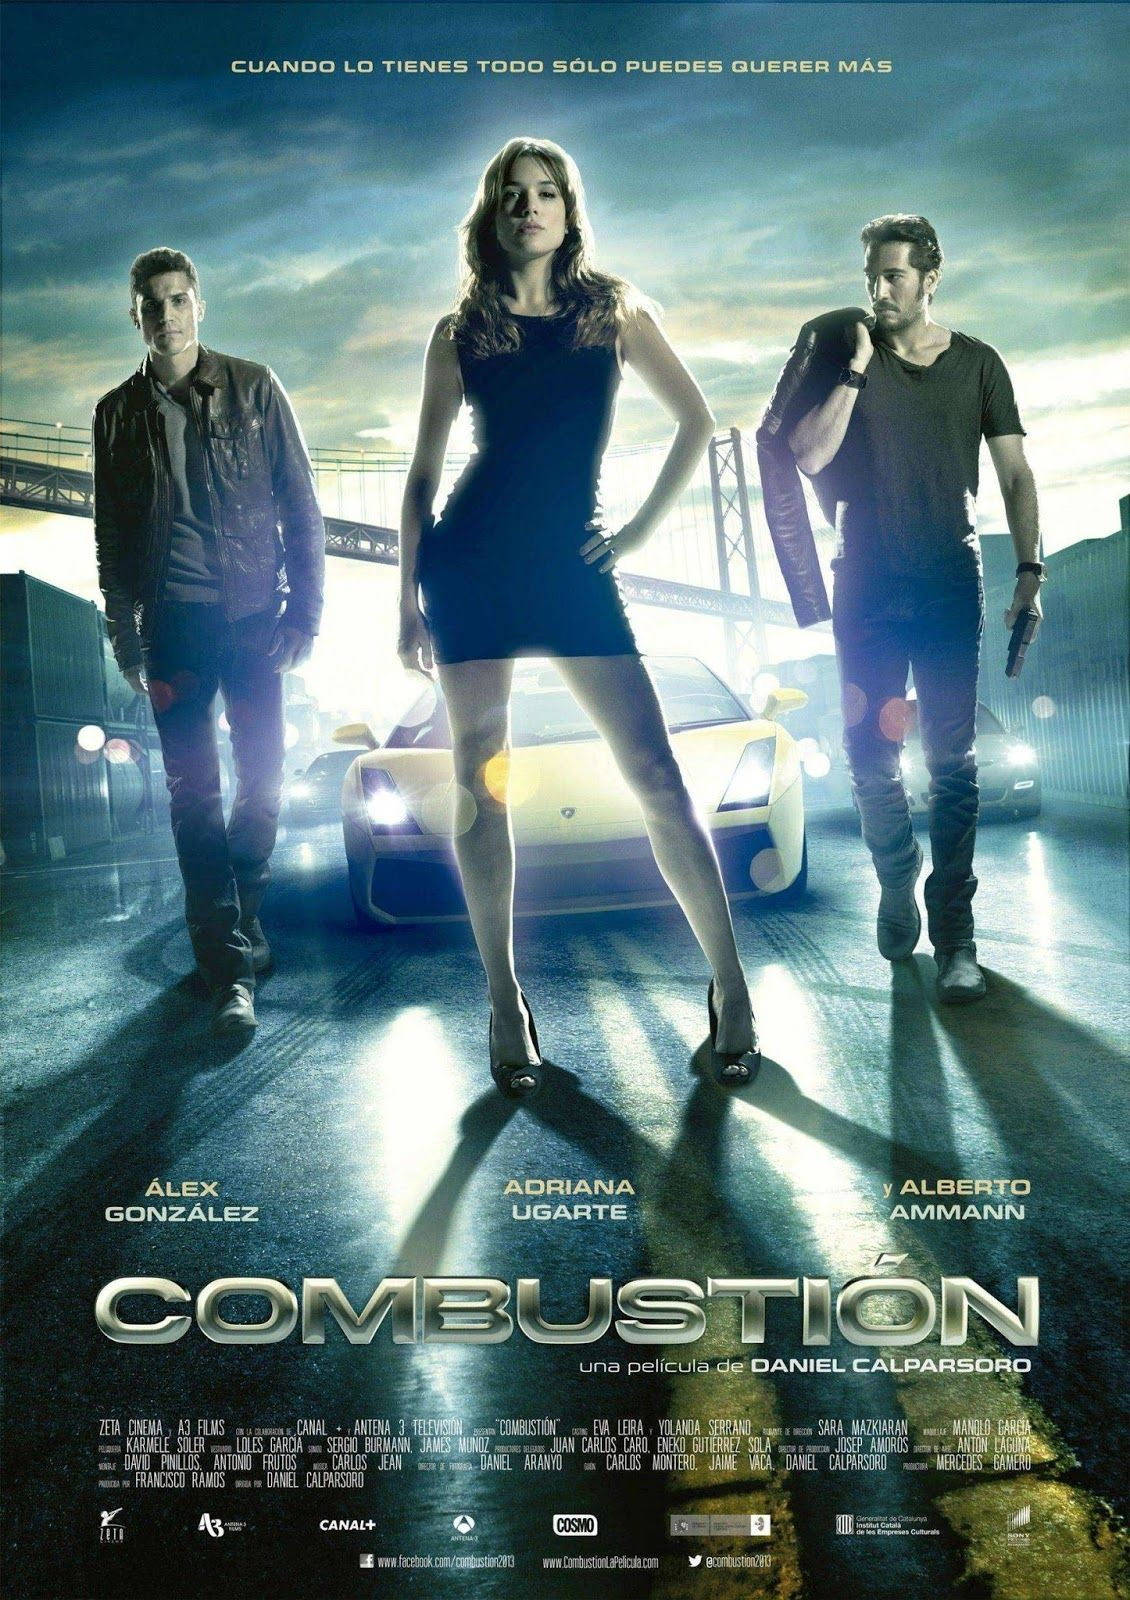 Combustion Latest Hd Movie Hd Movies New Movies Spanish Movies